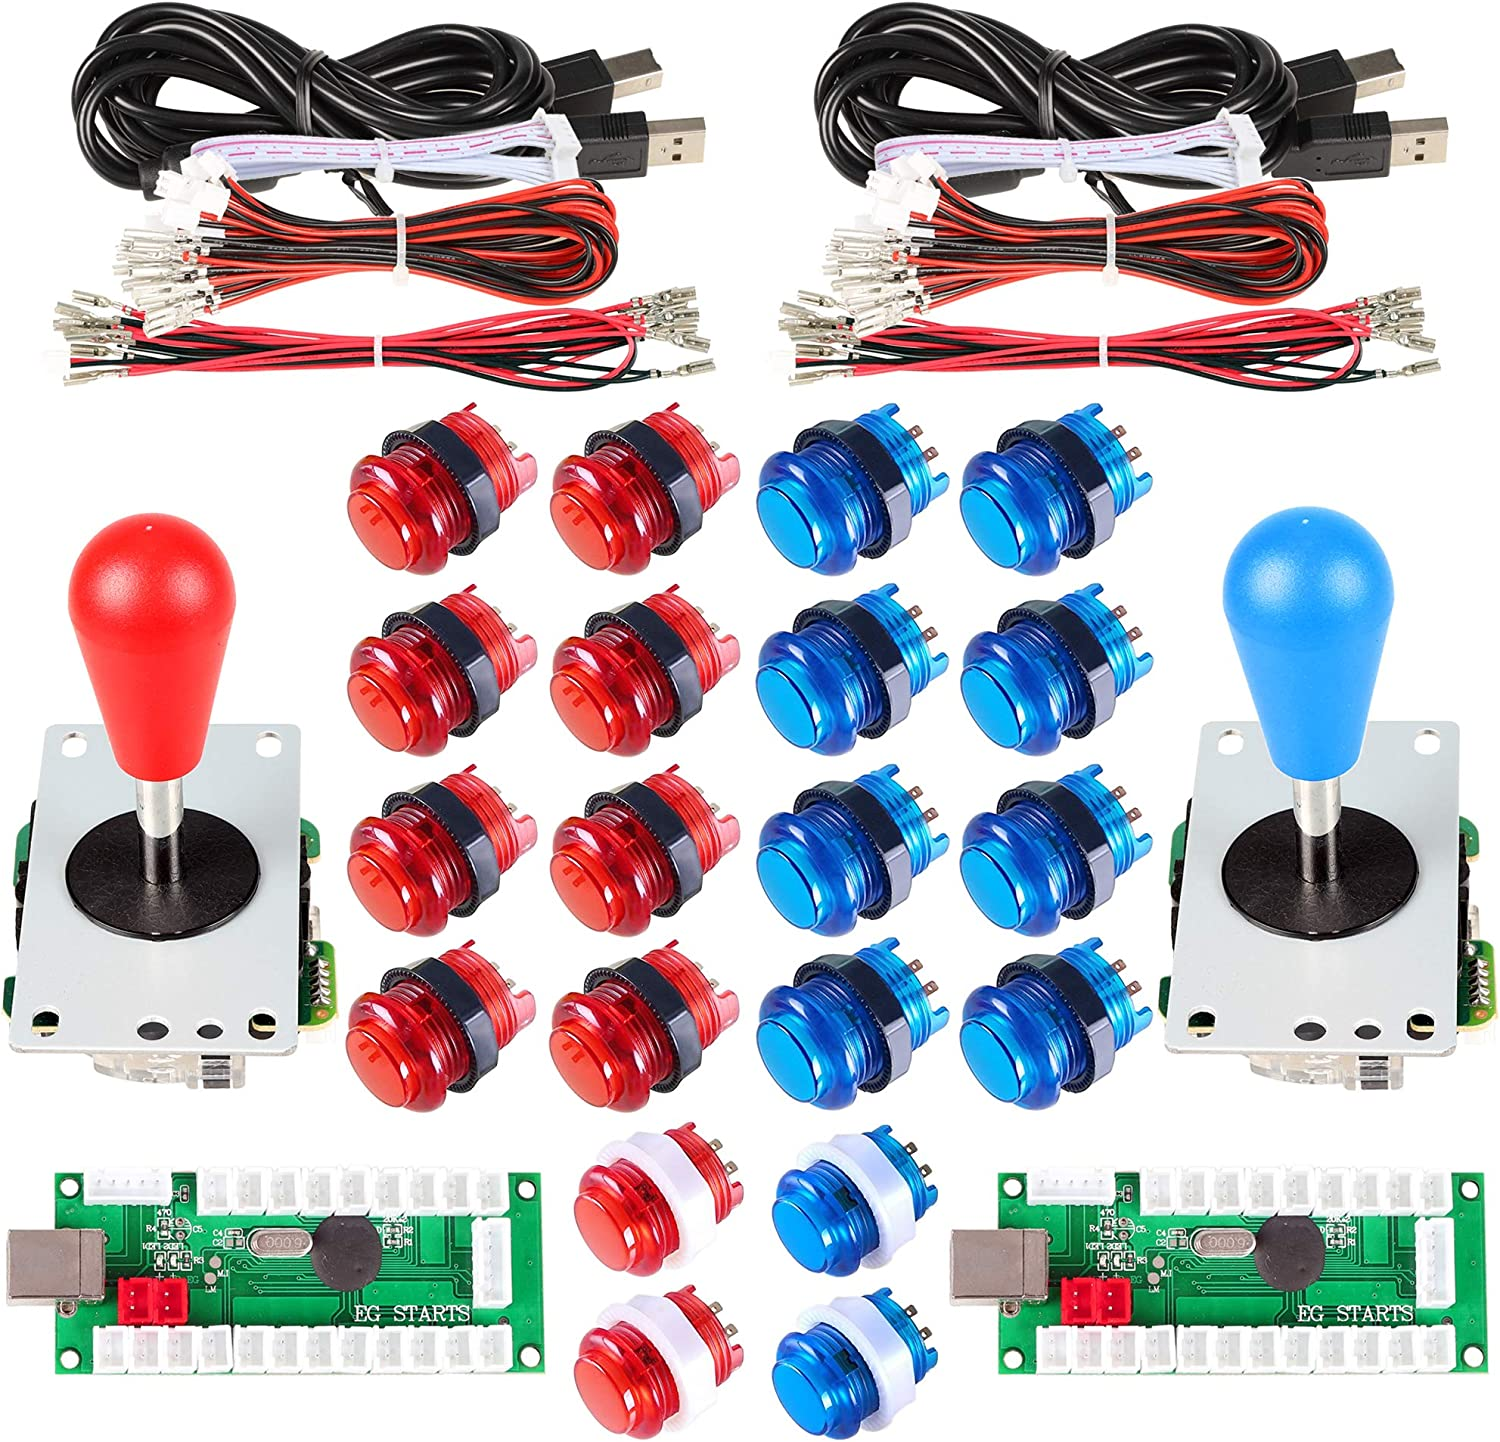 Blue and White 5V LED Illuminated Arcade Push Buttons Tongmisi Arcade DIY LED Kit with Zero Delay USB Encoder to PC Arcade Games 8 Way Joystick